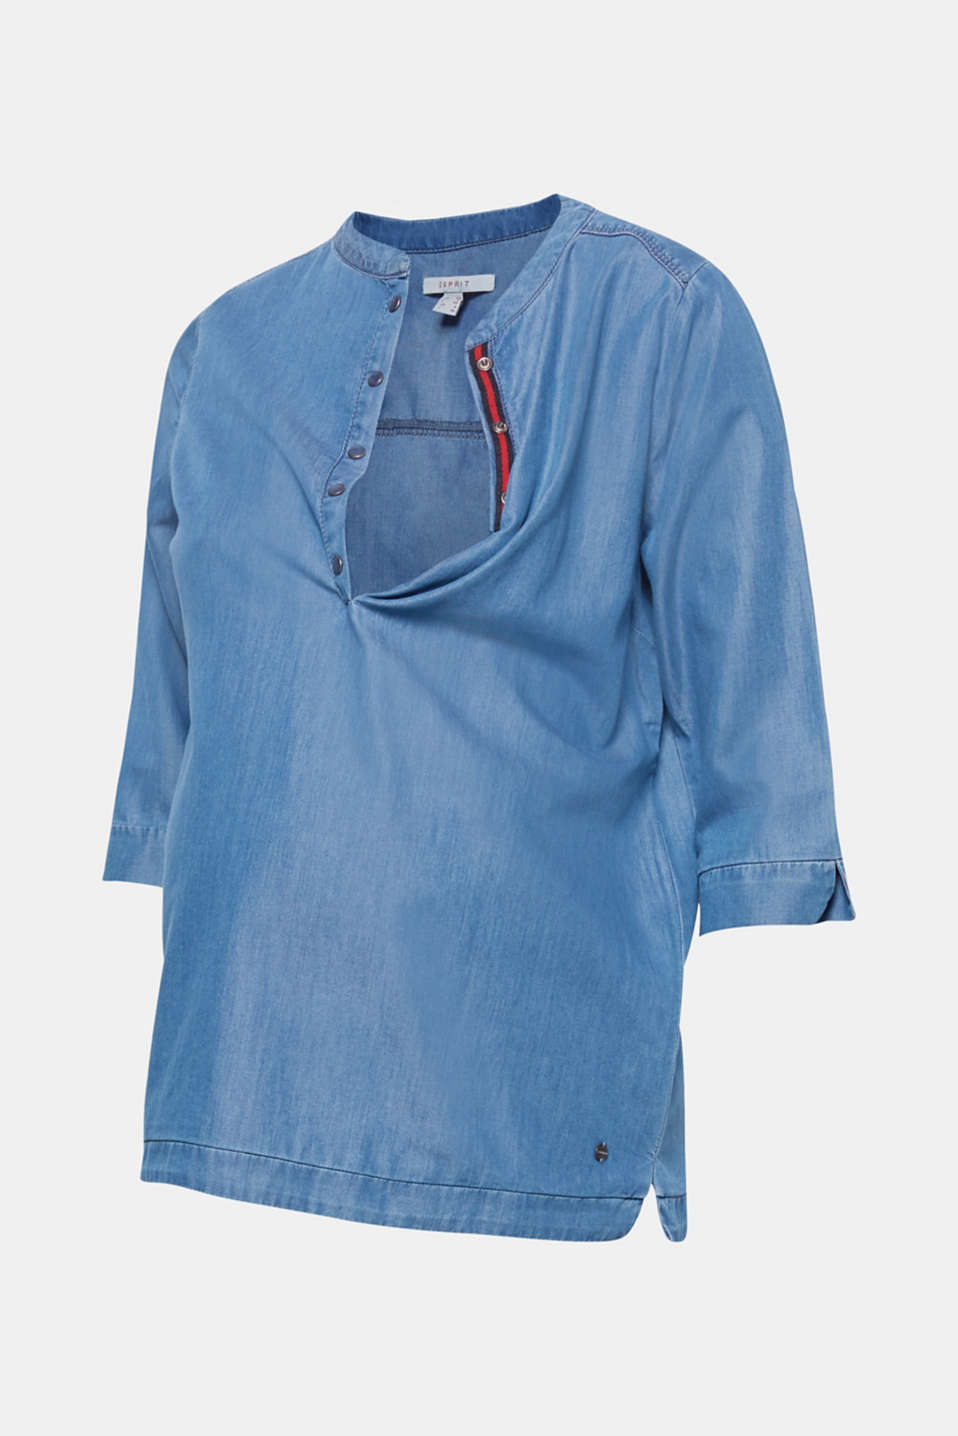 Denim blouse with three-quarter length sleeves, LCBRIGHT BLUE, detail image number 6